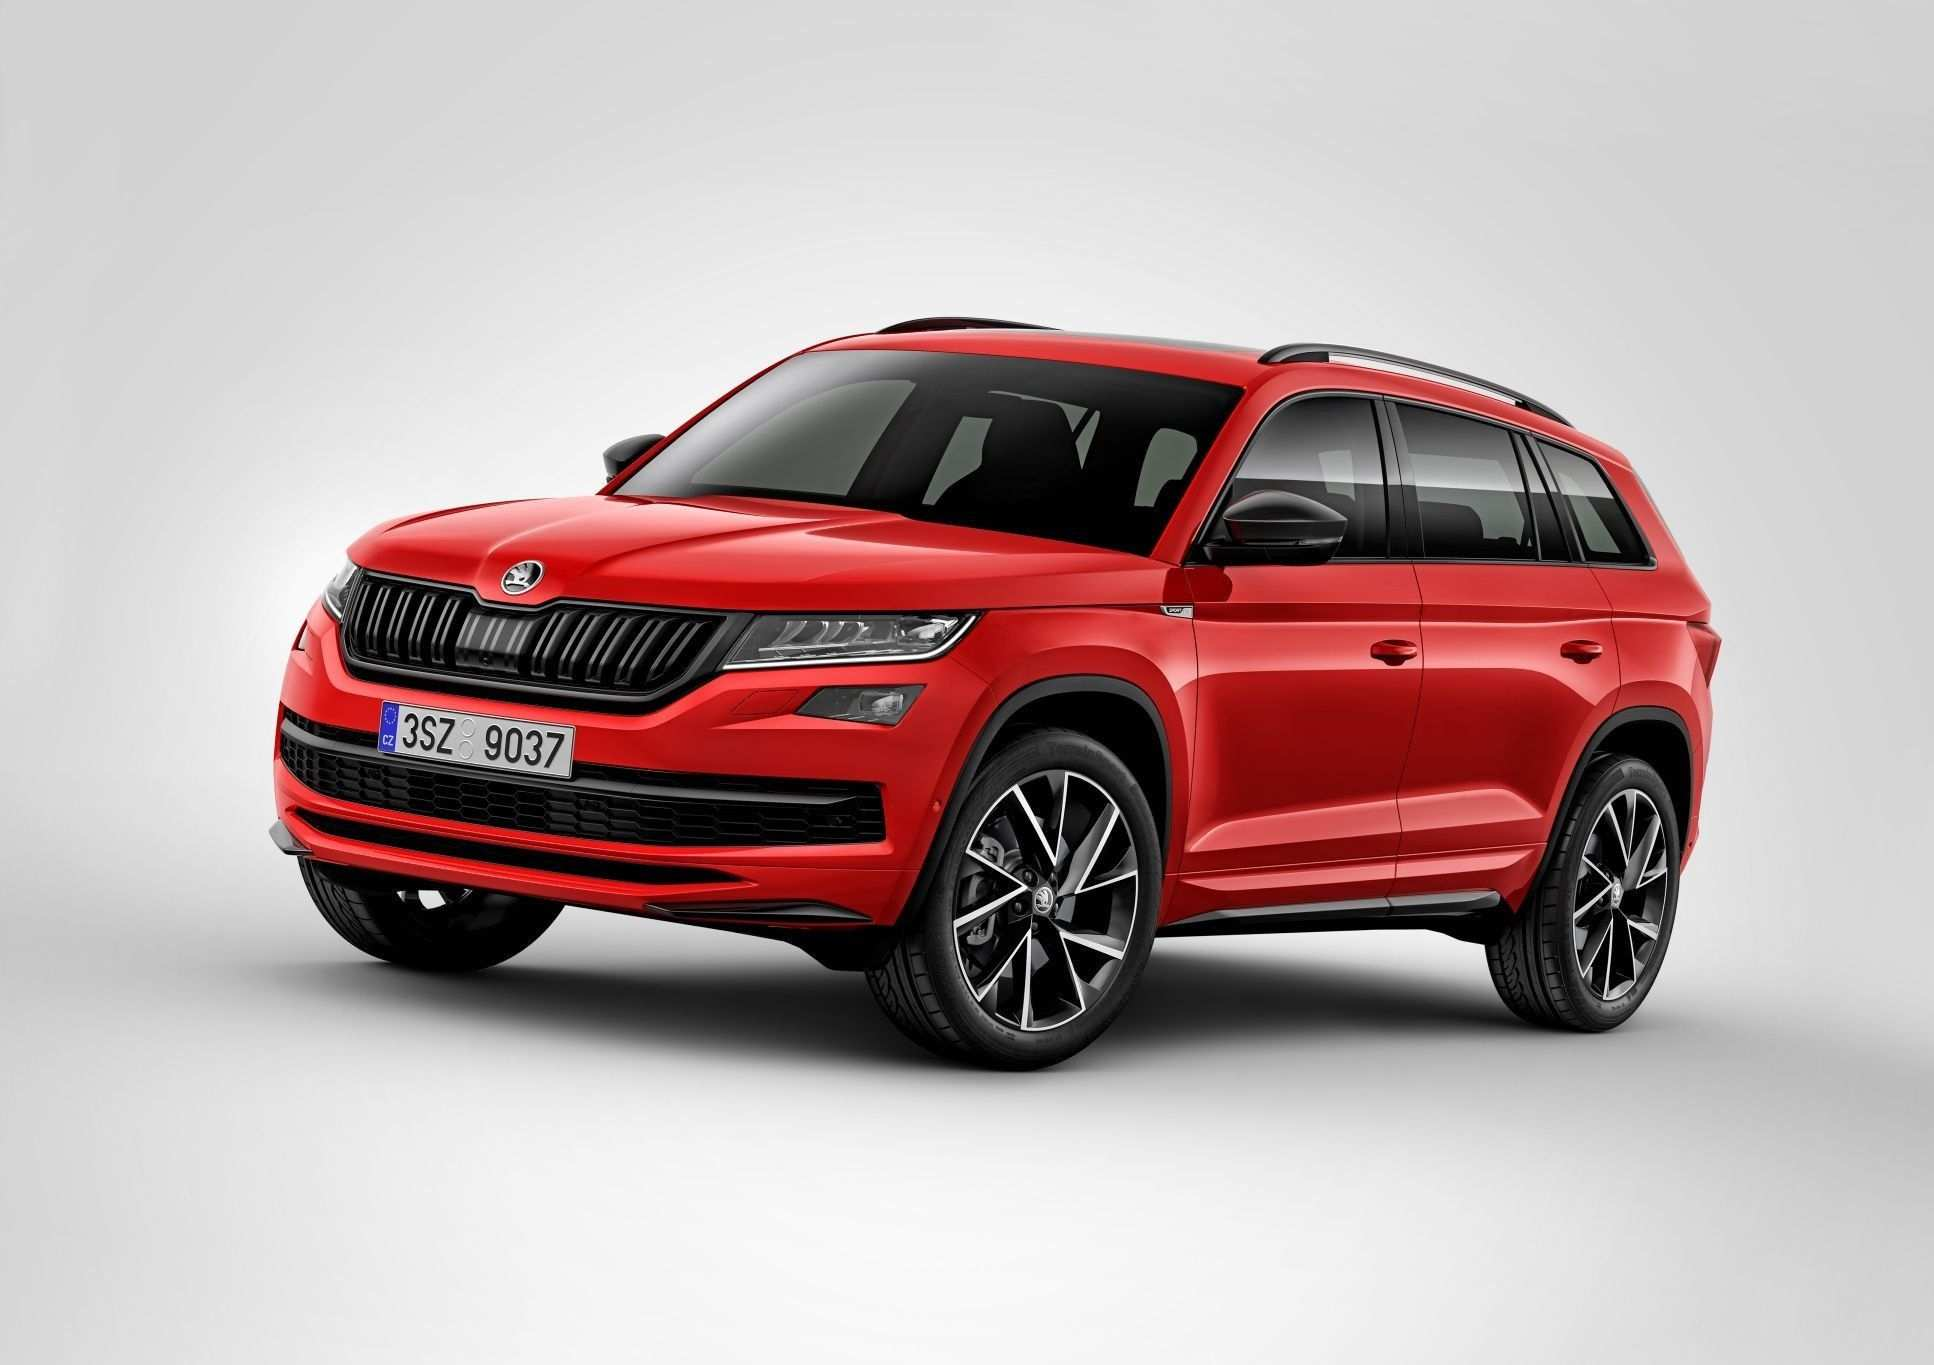 2020 Skoda Yeti India Egypt Release Date and Concept